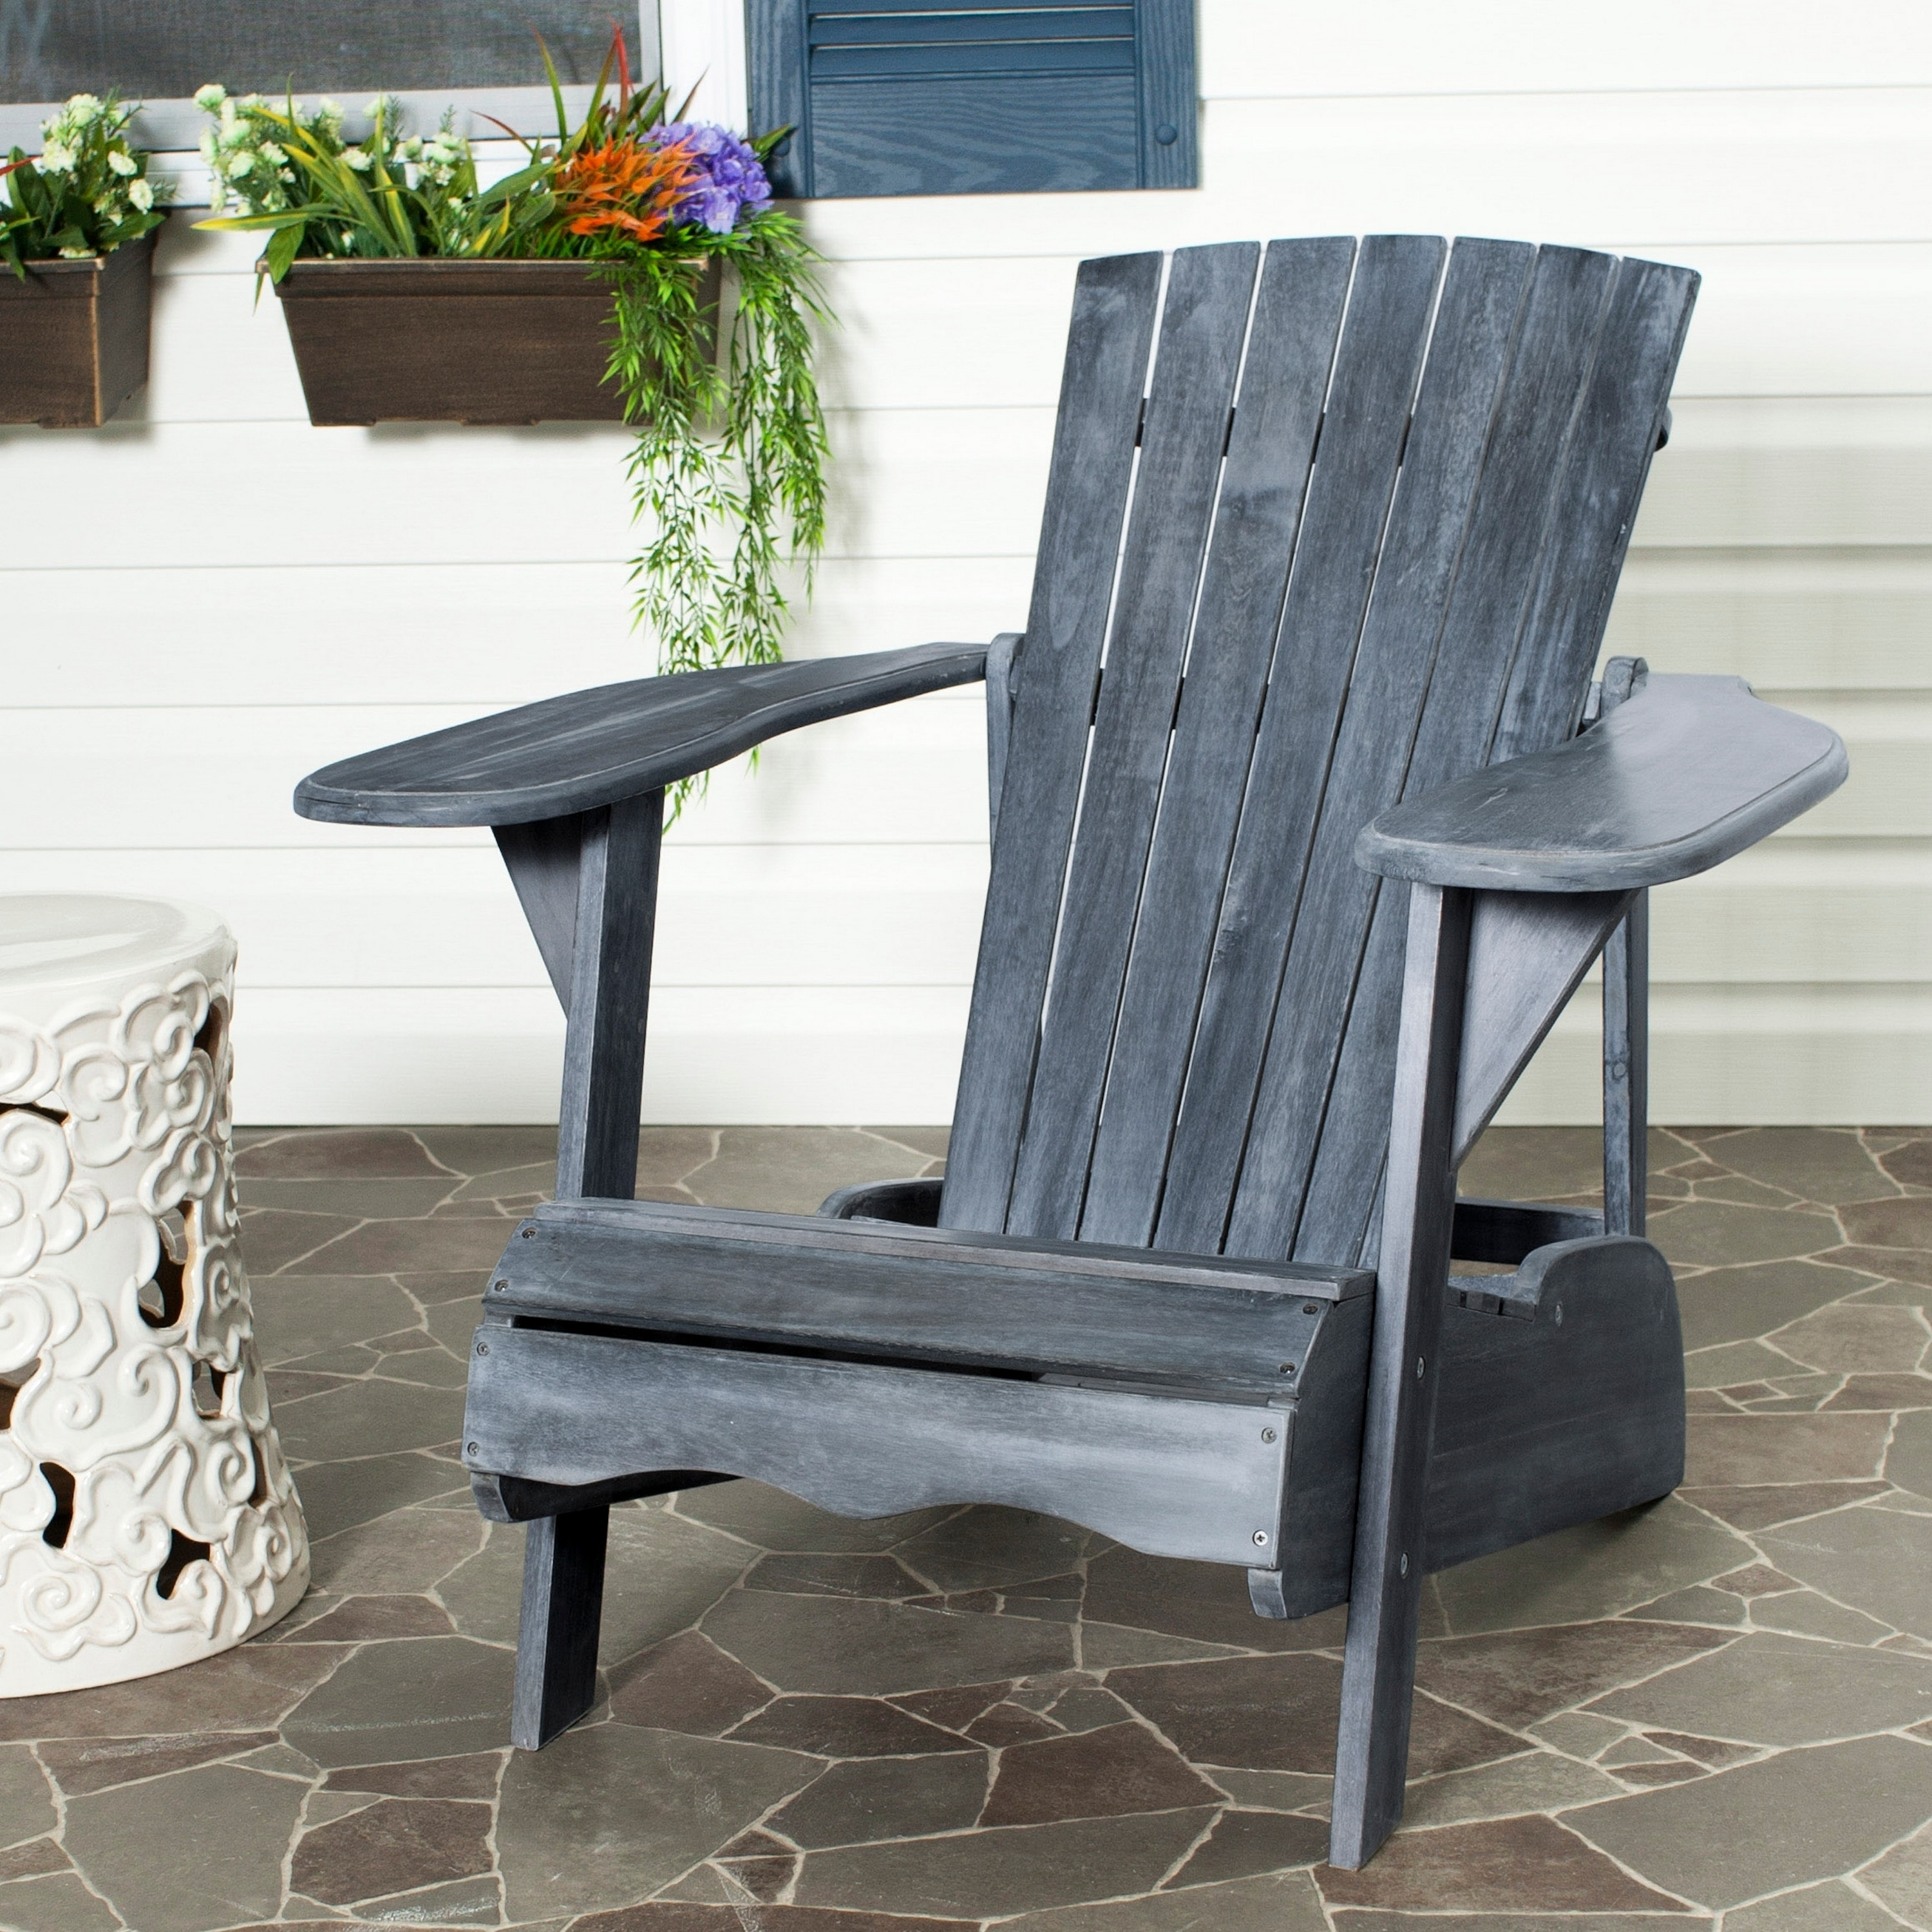 Terrific Safavieh Outdoor Living Mopani Adirondack Ash Grey Acacia Wood Chair Gmtry Best Dining Table And Chair Ideas Images Gmtryco